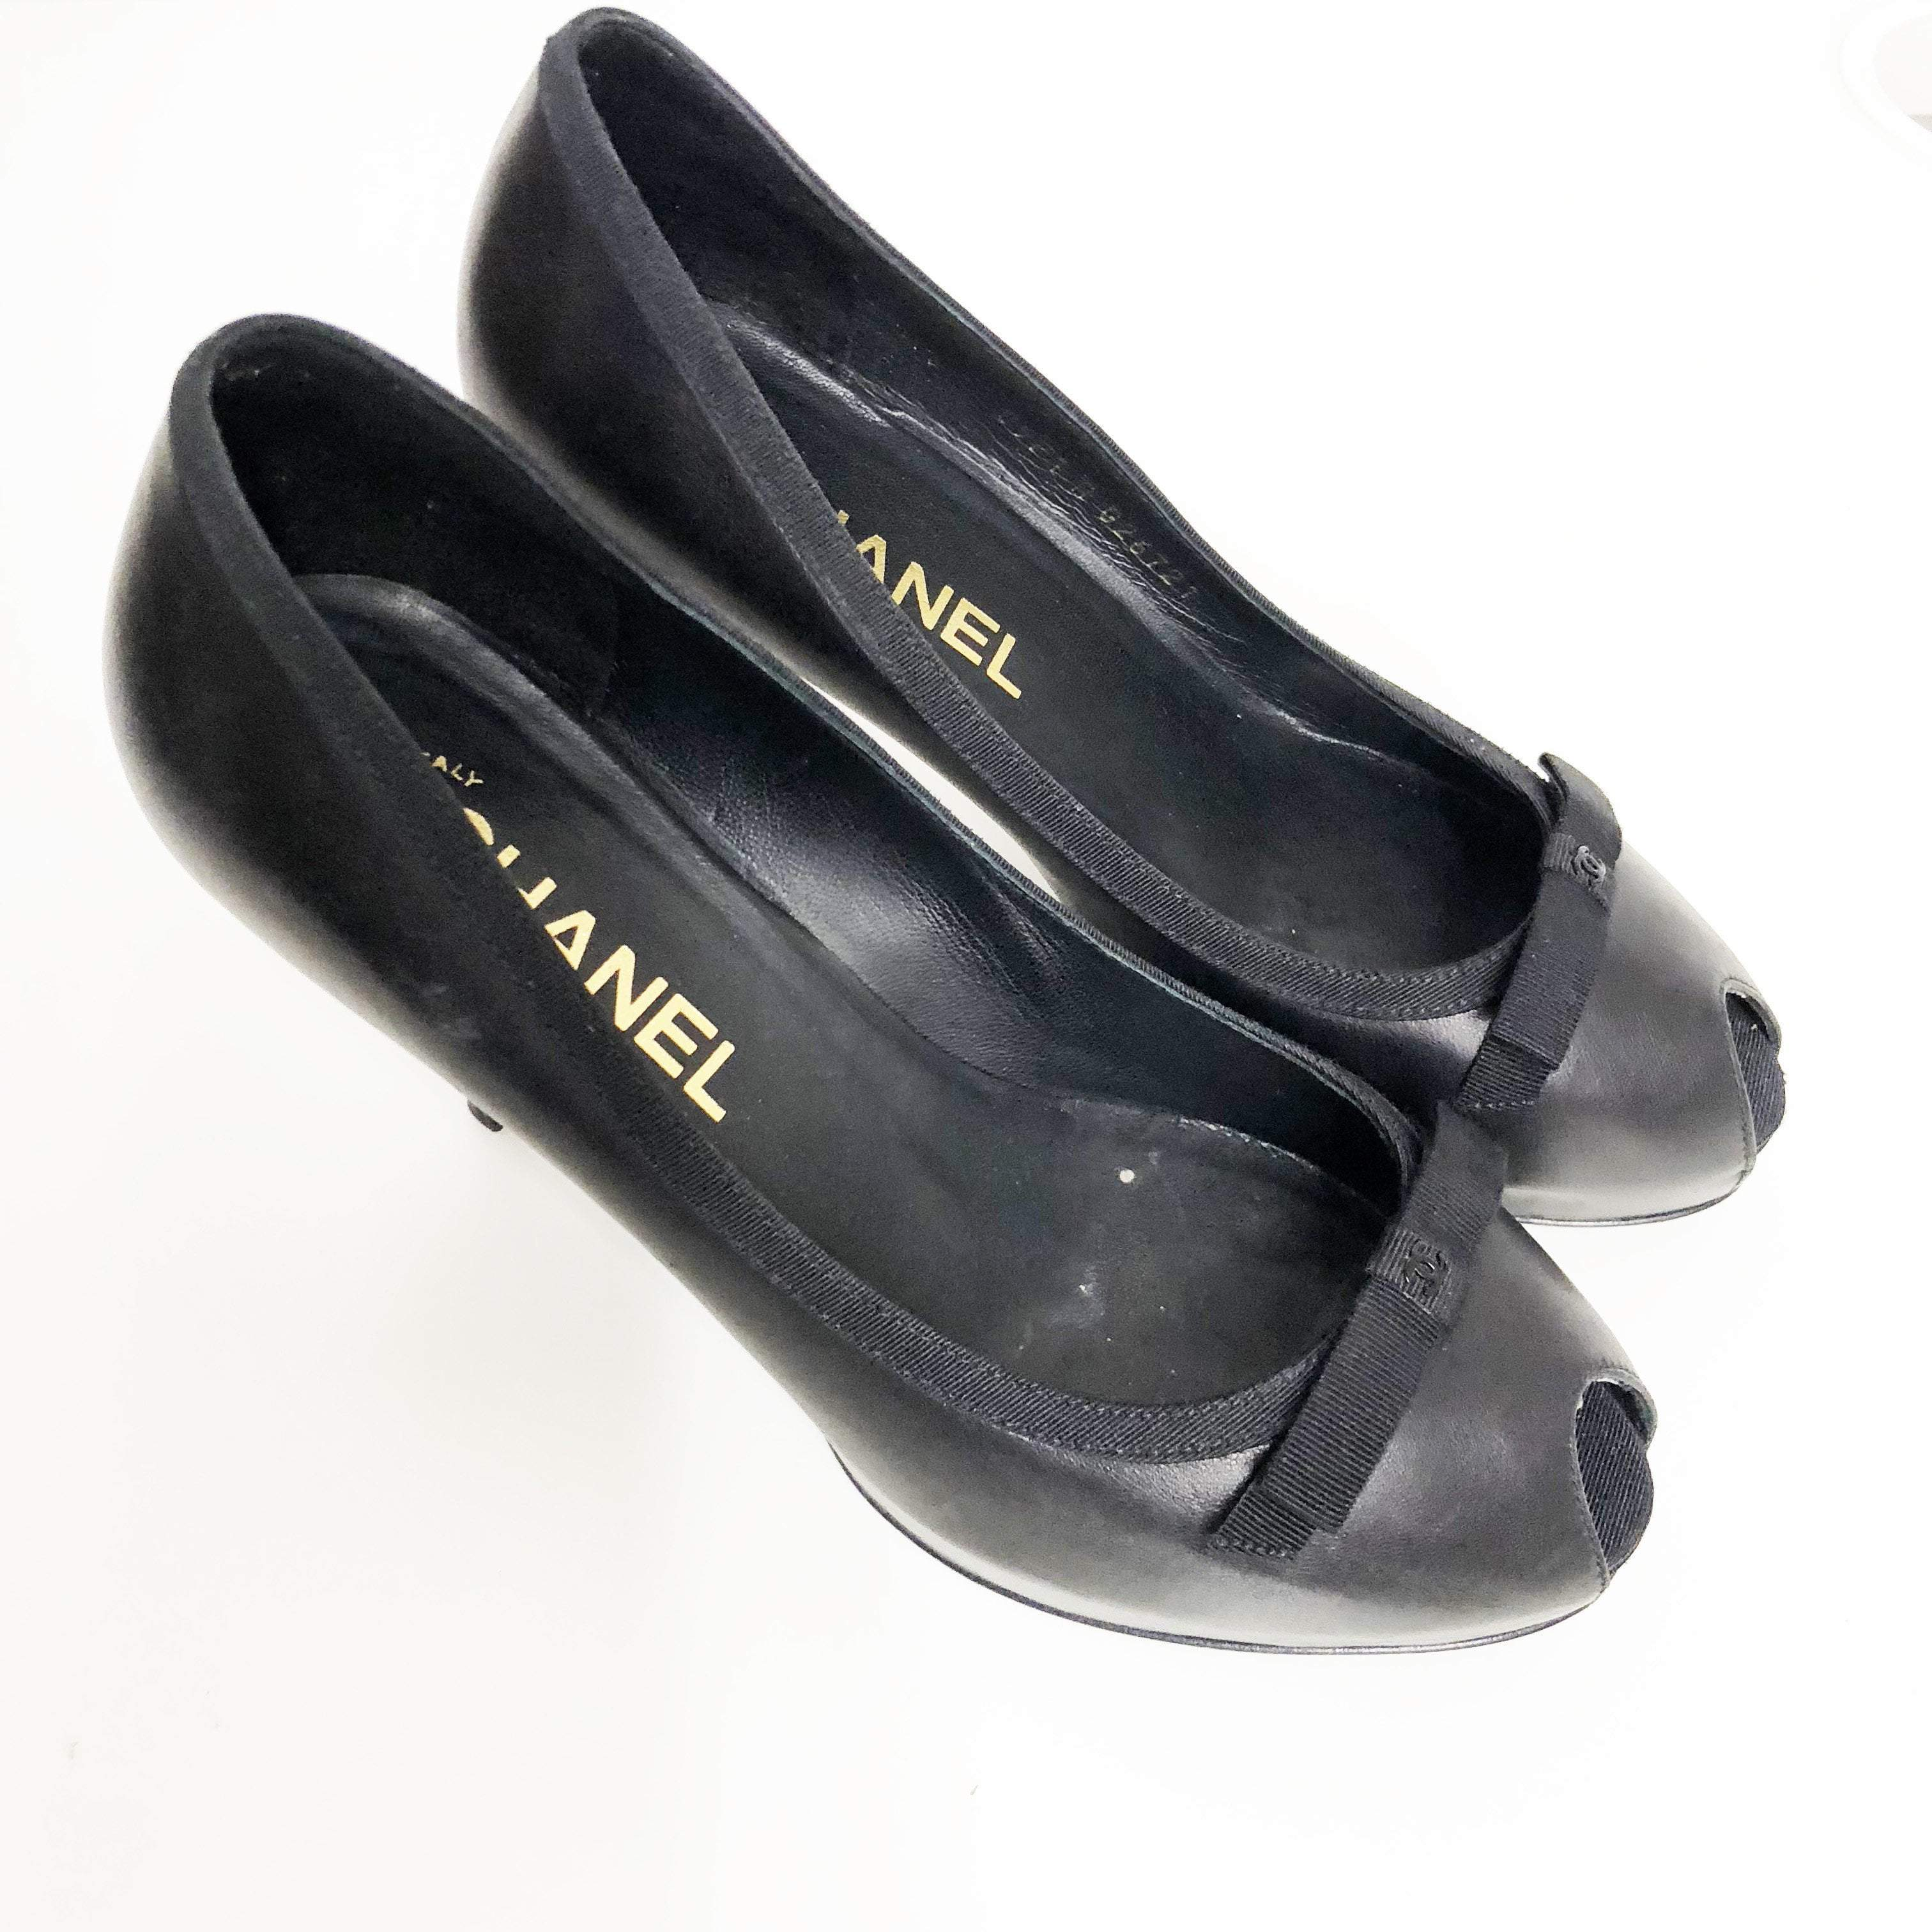 Chanel Leather Bow Peep Toe Shoes